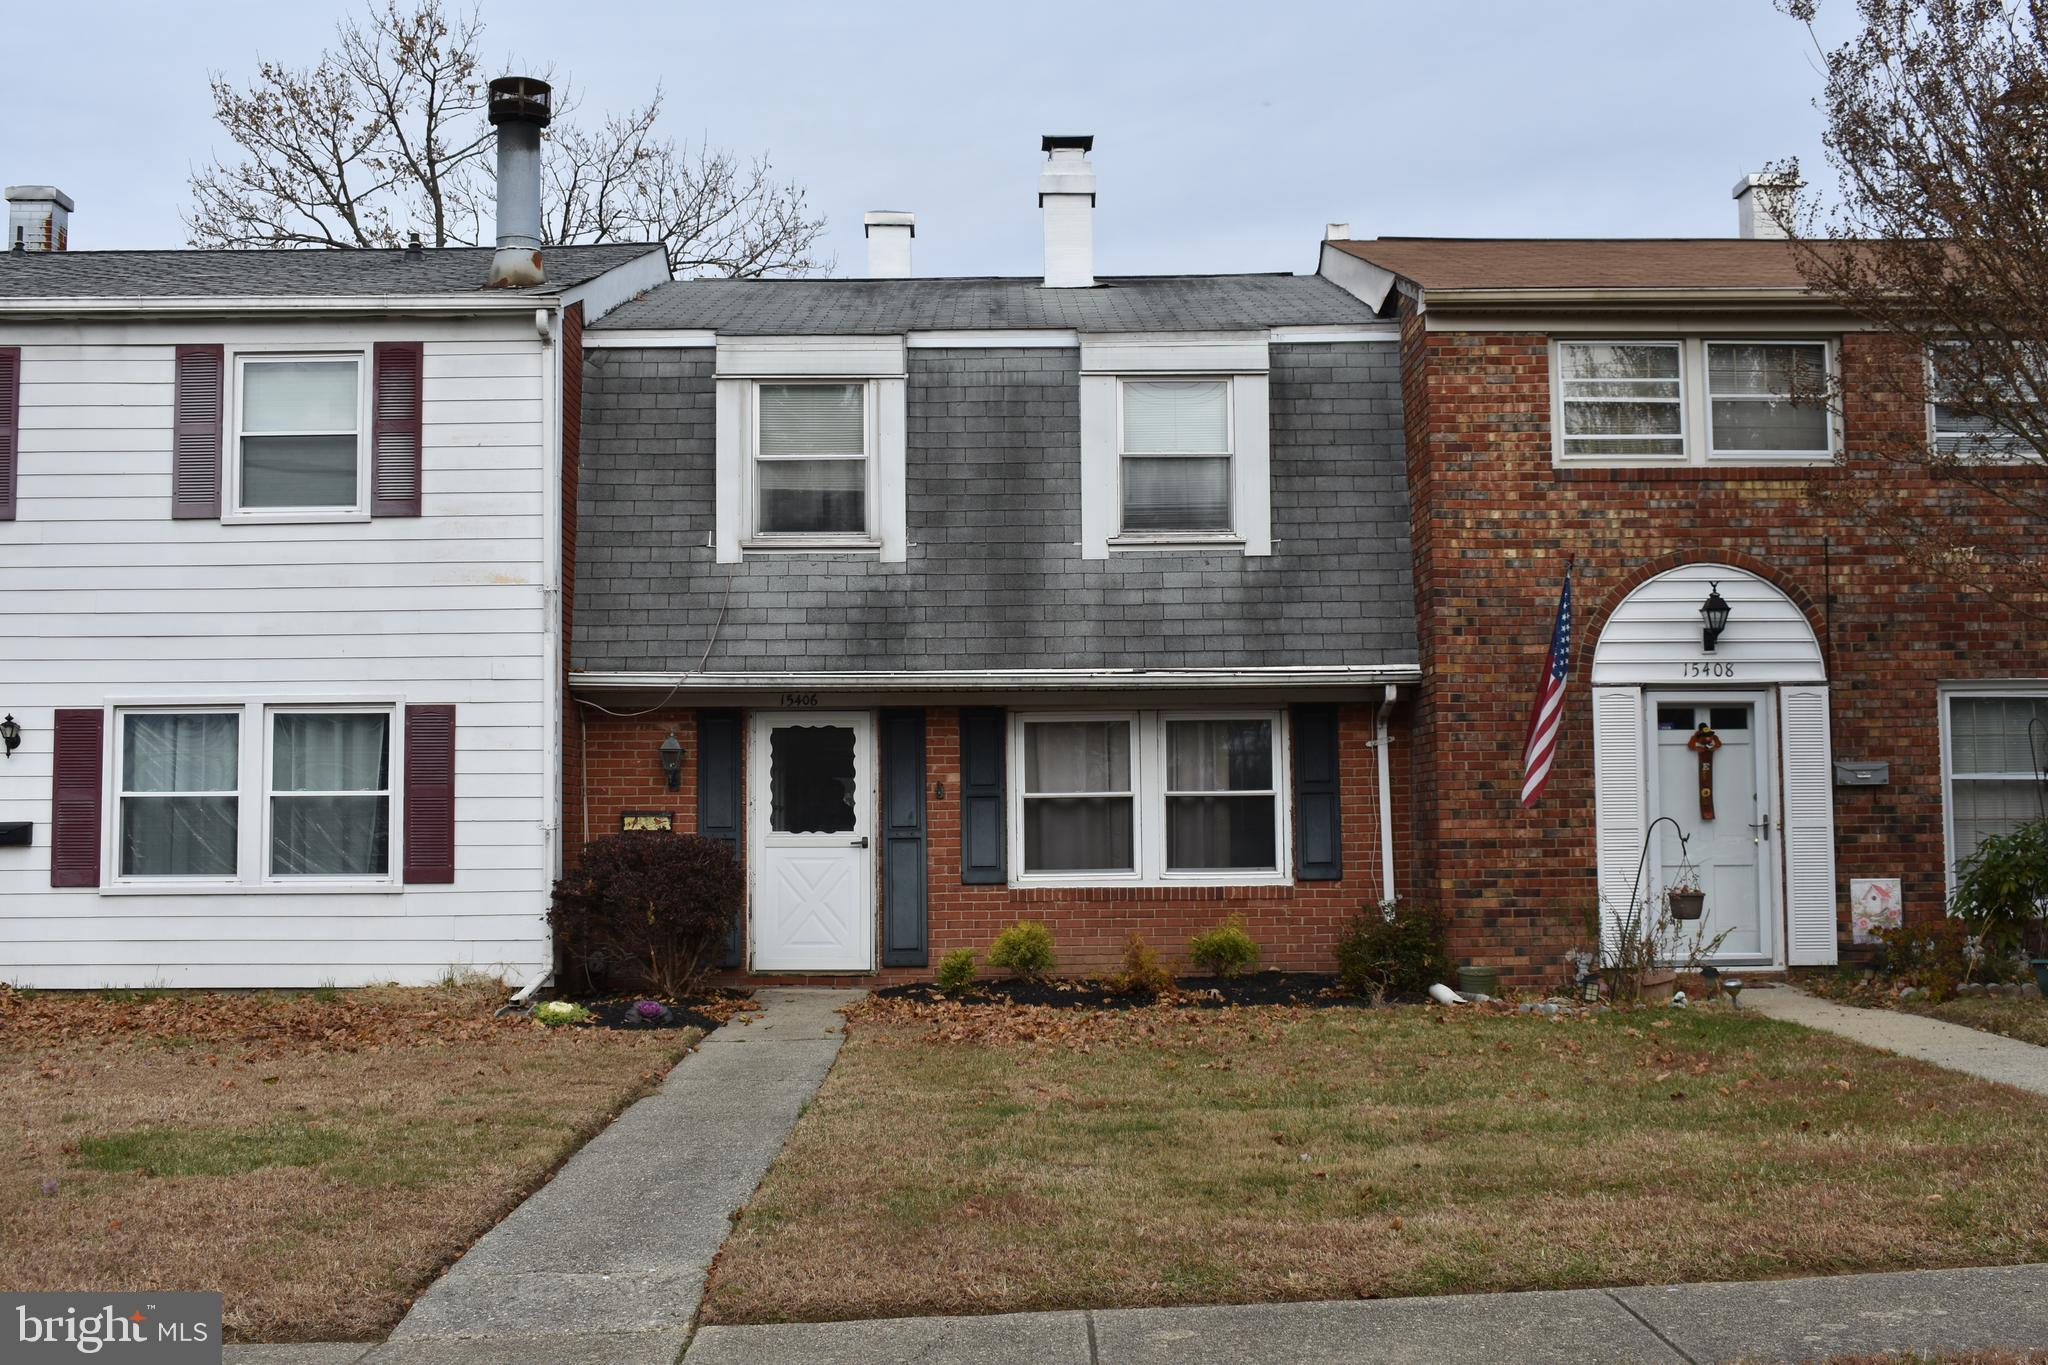 Updated and charming town home in Belair Town, strategically located near shopping center, grocery store and restaurants. This home offers newer flooring throughout, separate dining room leading to a ample fenced-in patio. Wonderful community right off Belair Swim and Racquet Club.